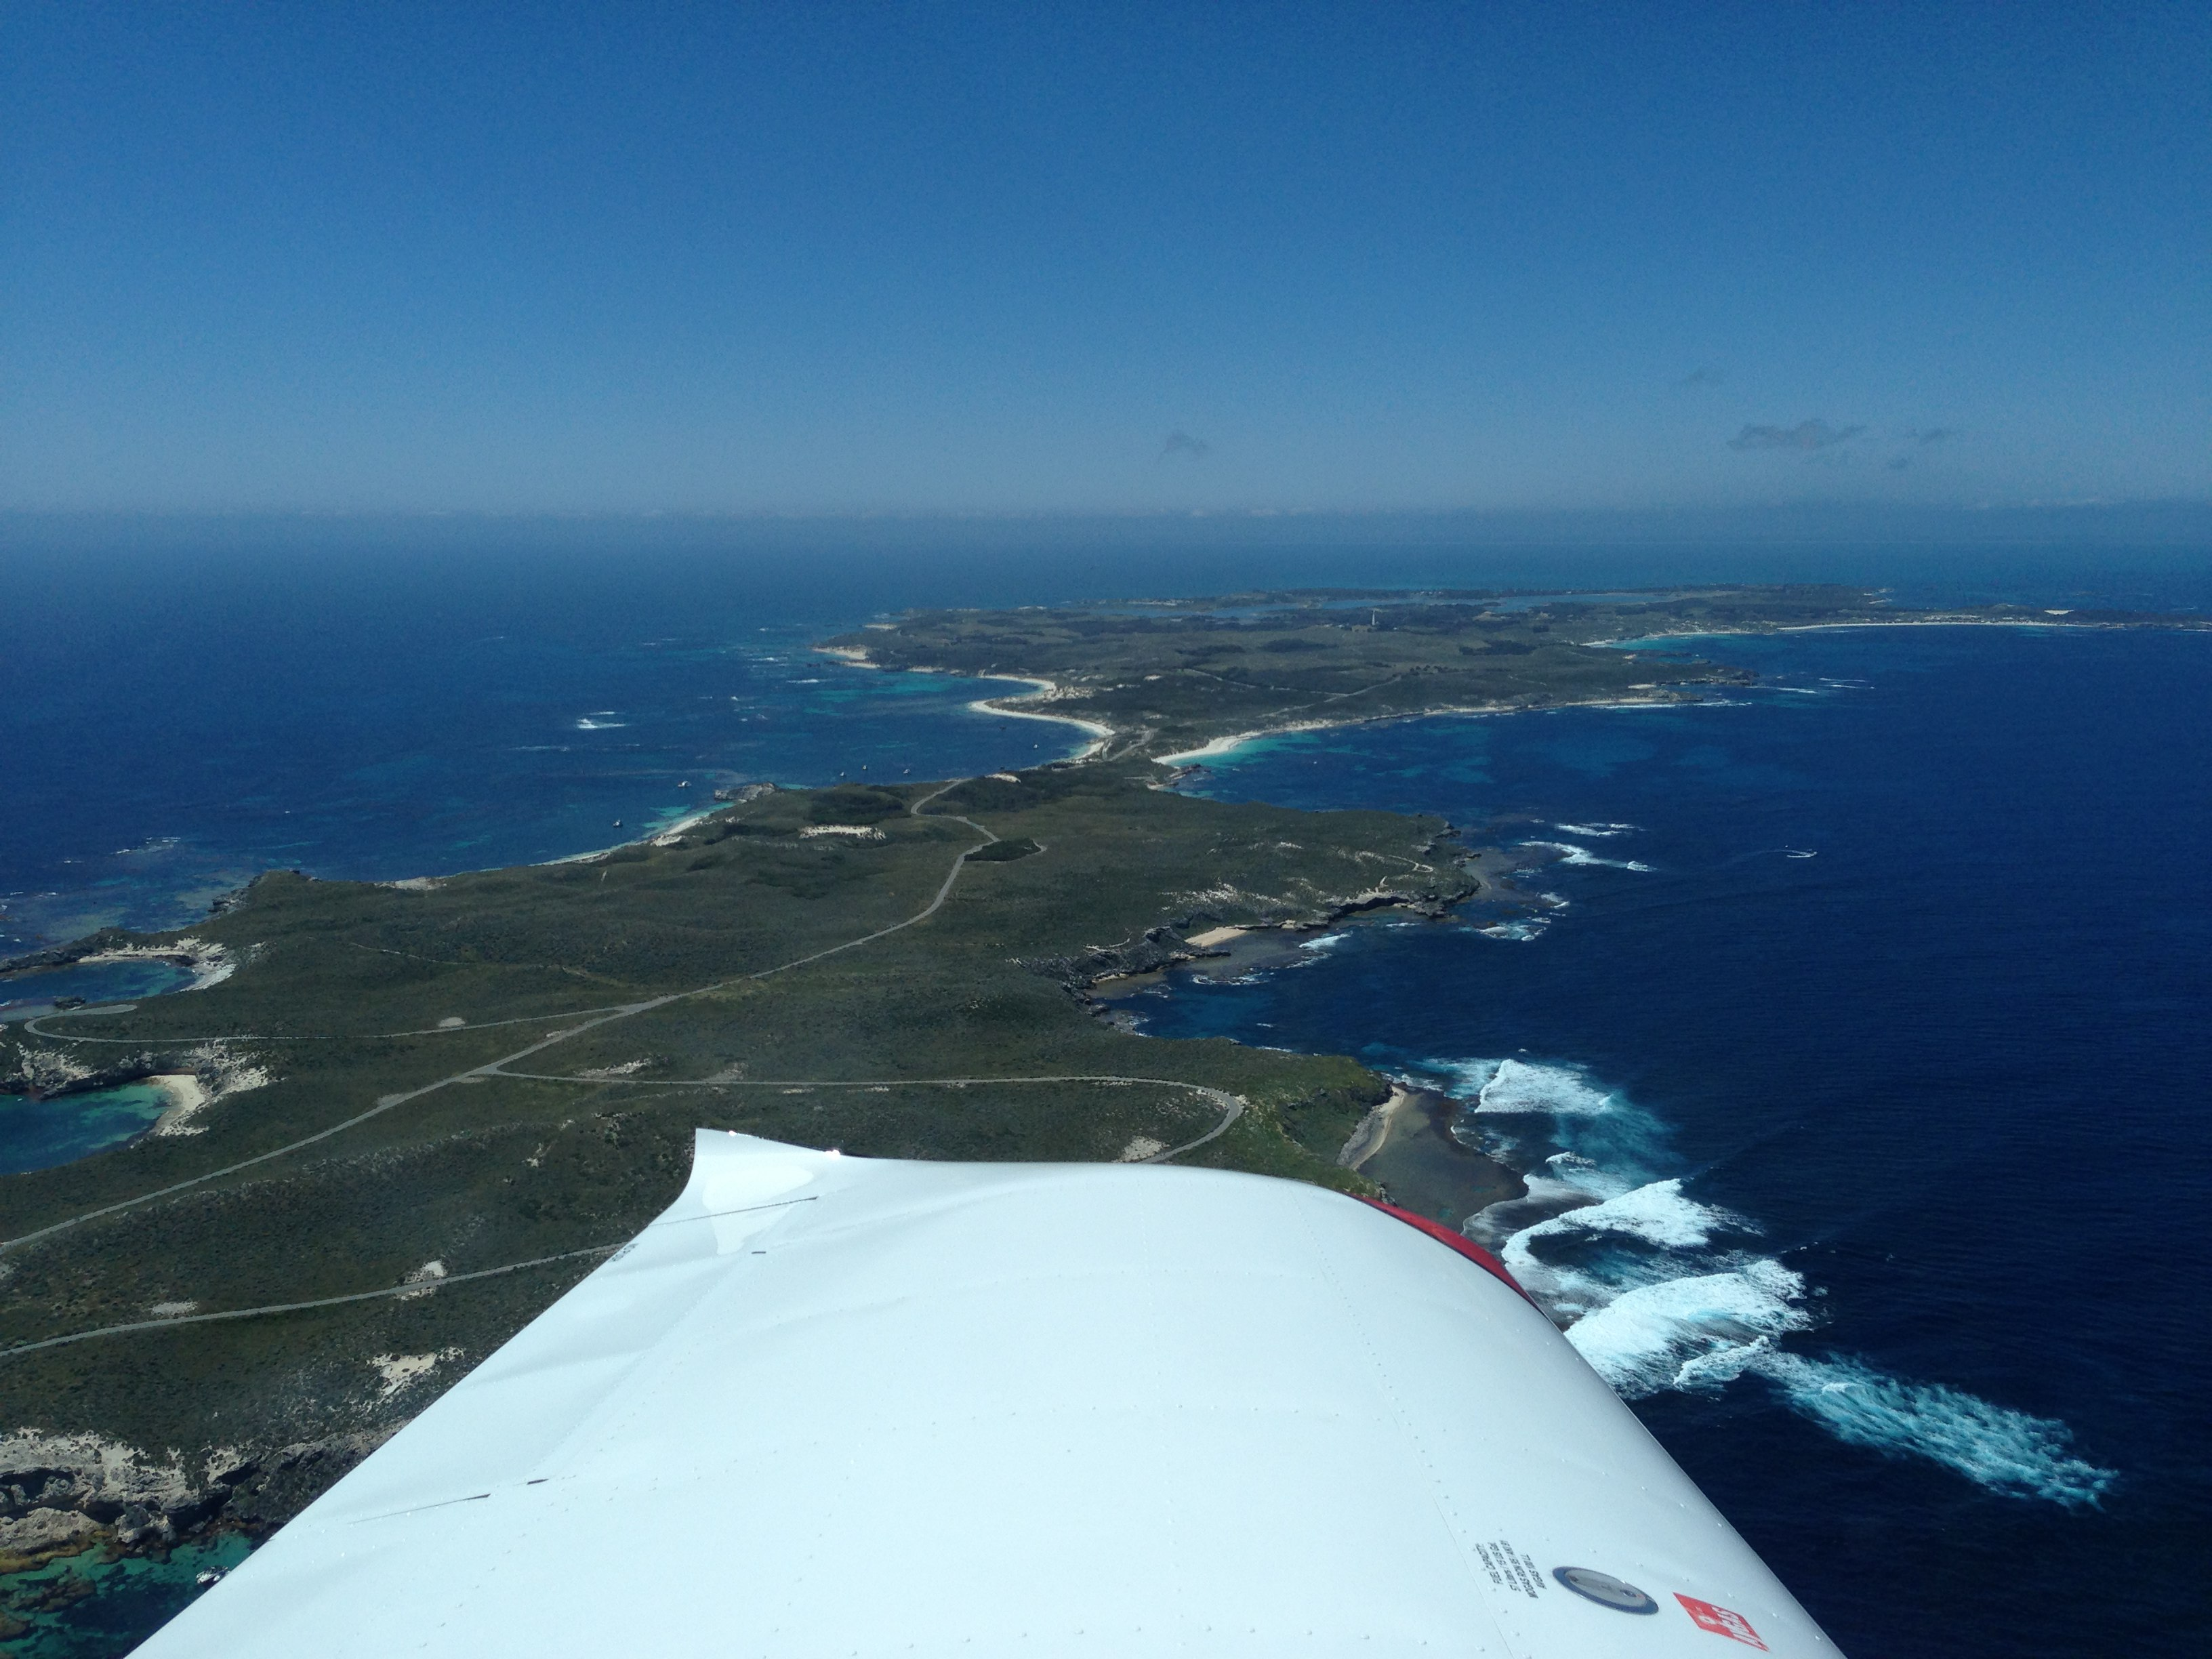 VH-EZT CSA pipersport sportscruiser flying around rottnest island ocean